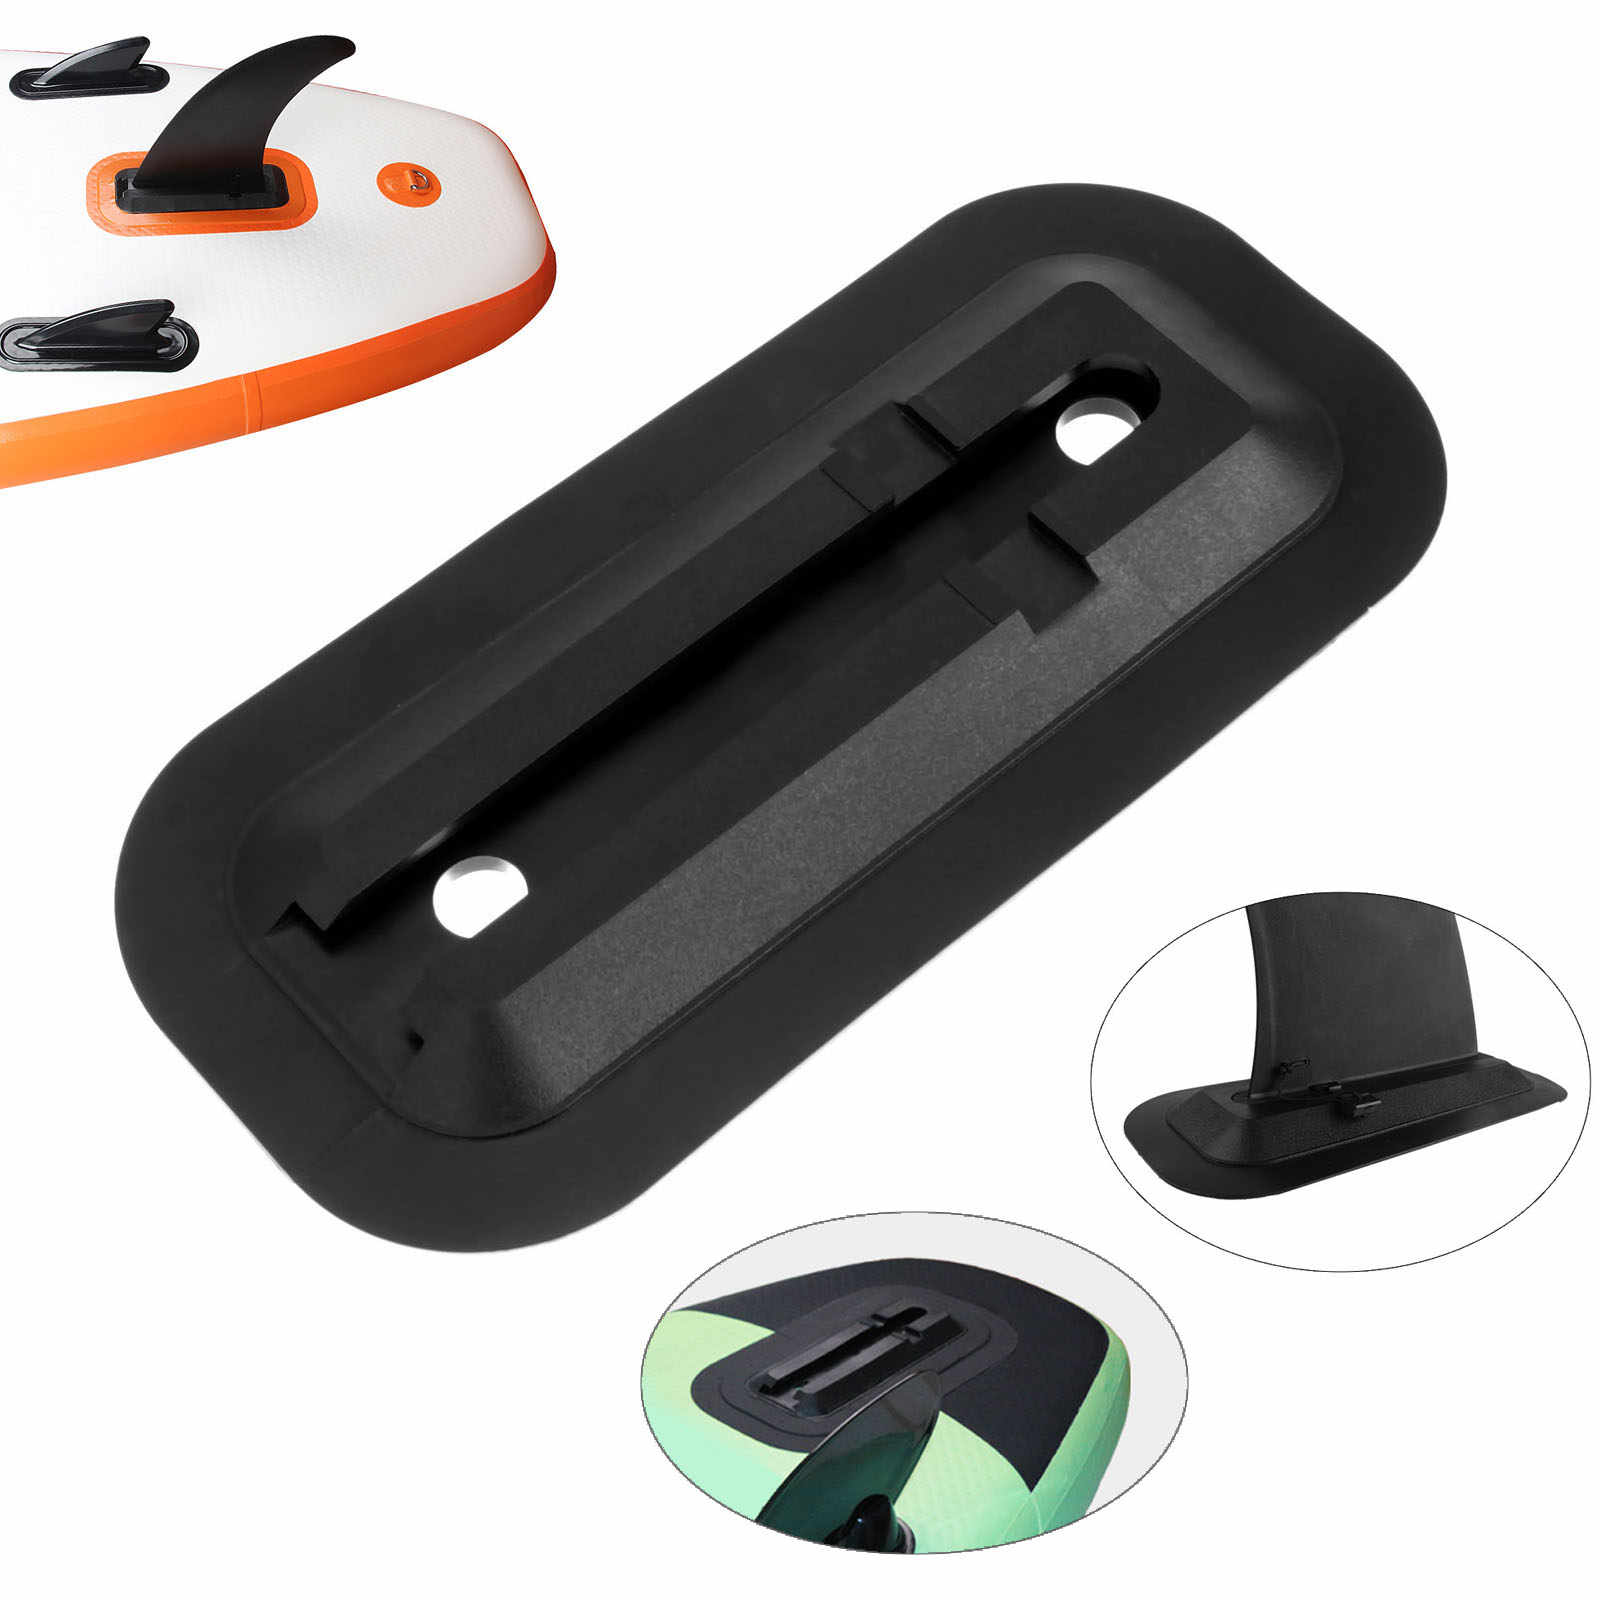 1 Pc de PVC diapositiva-en Central Fin lado Fin Base para SUP Stand Up Paddle Junta tabla de surf inflable de Remo los barcos Kayak Accesorios